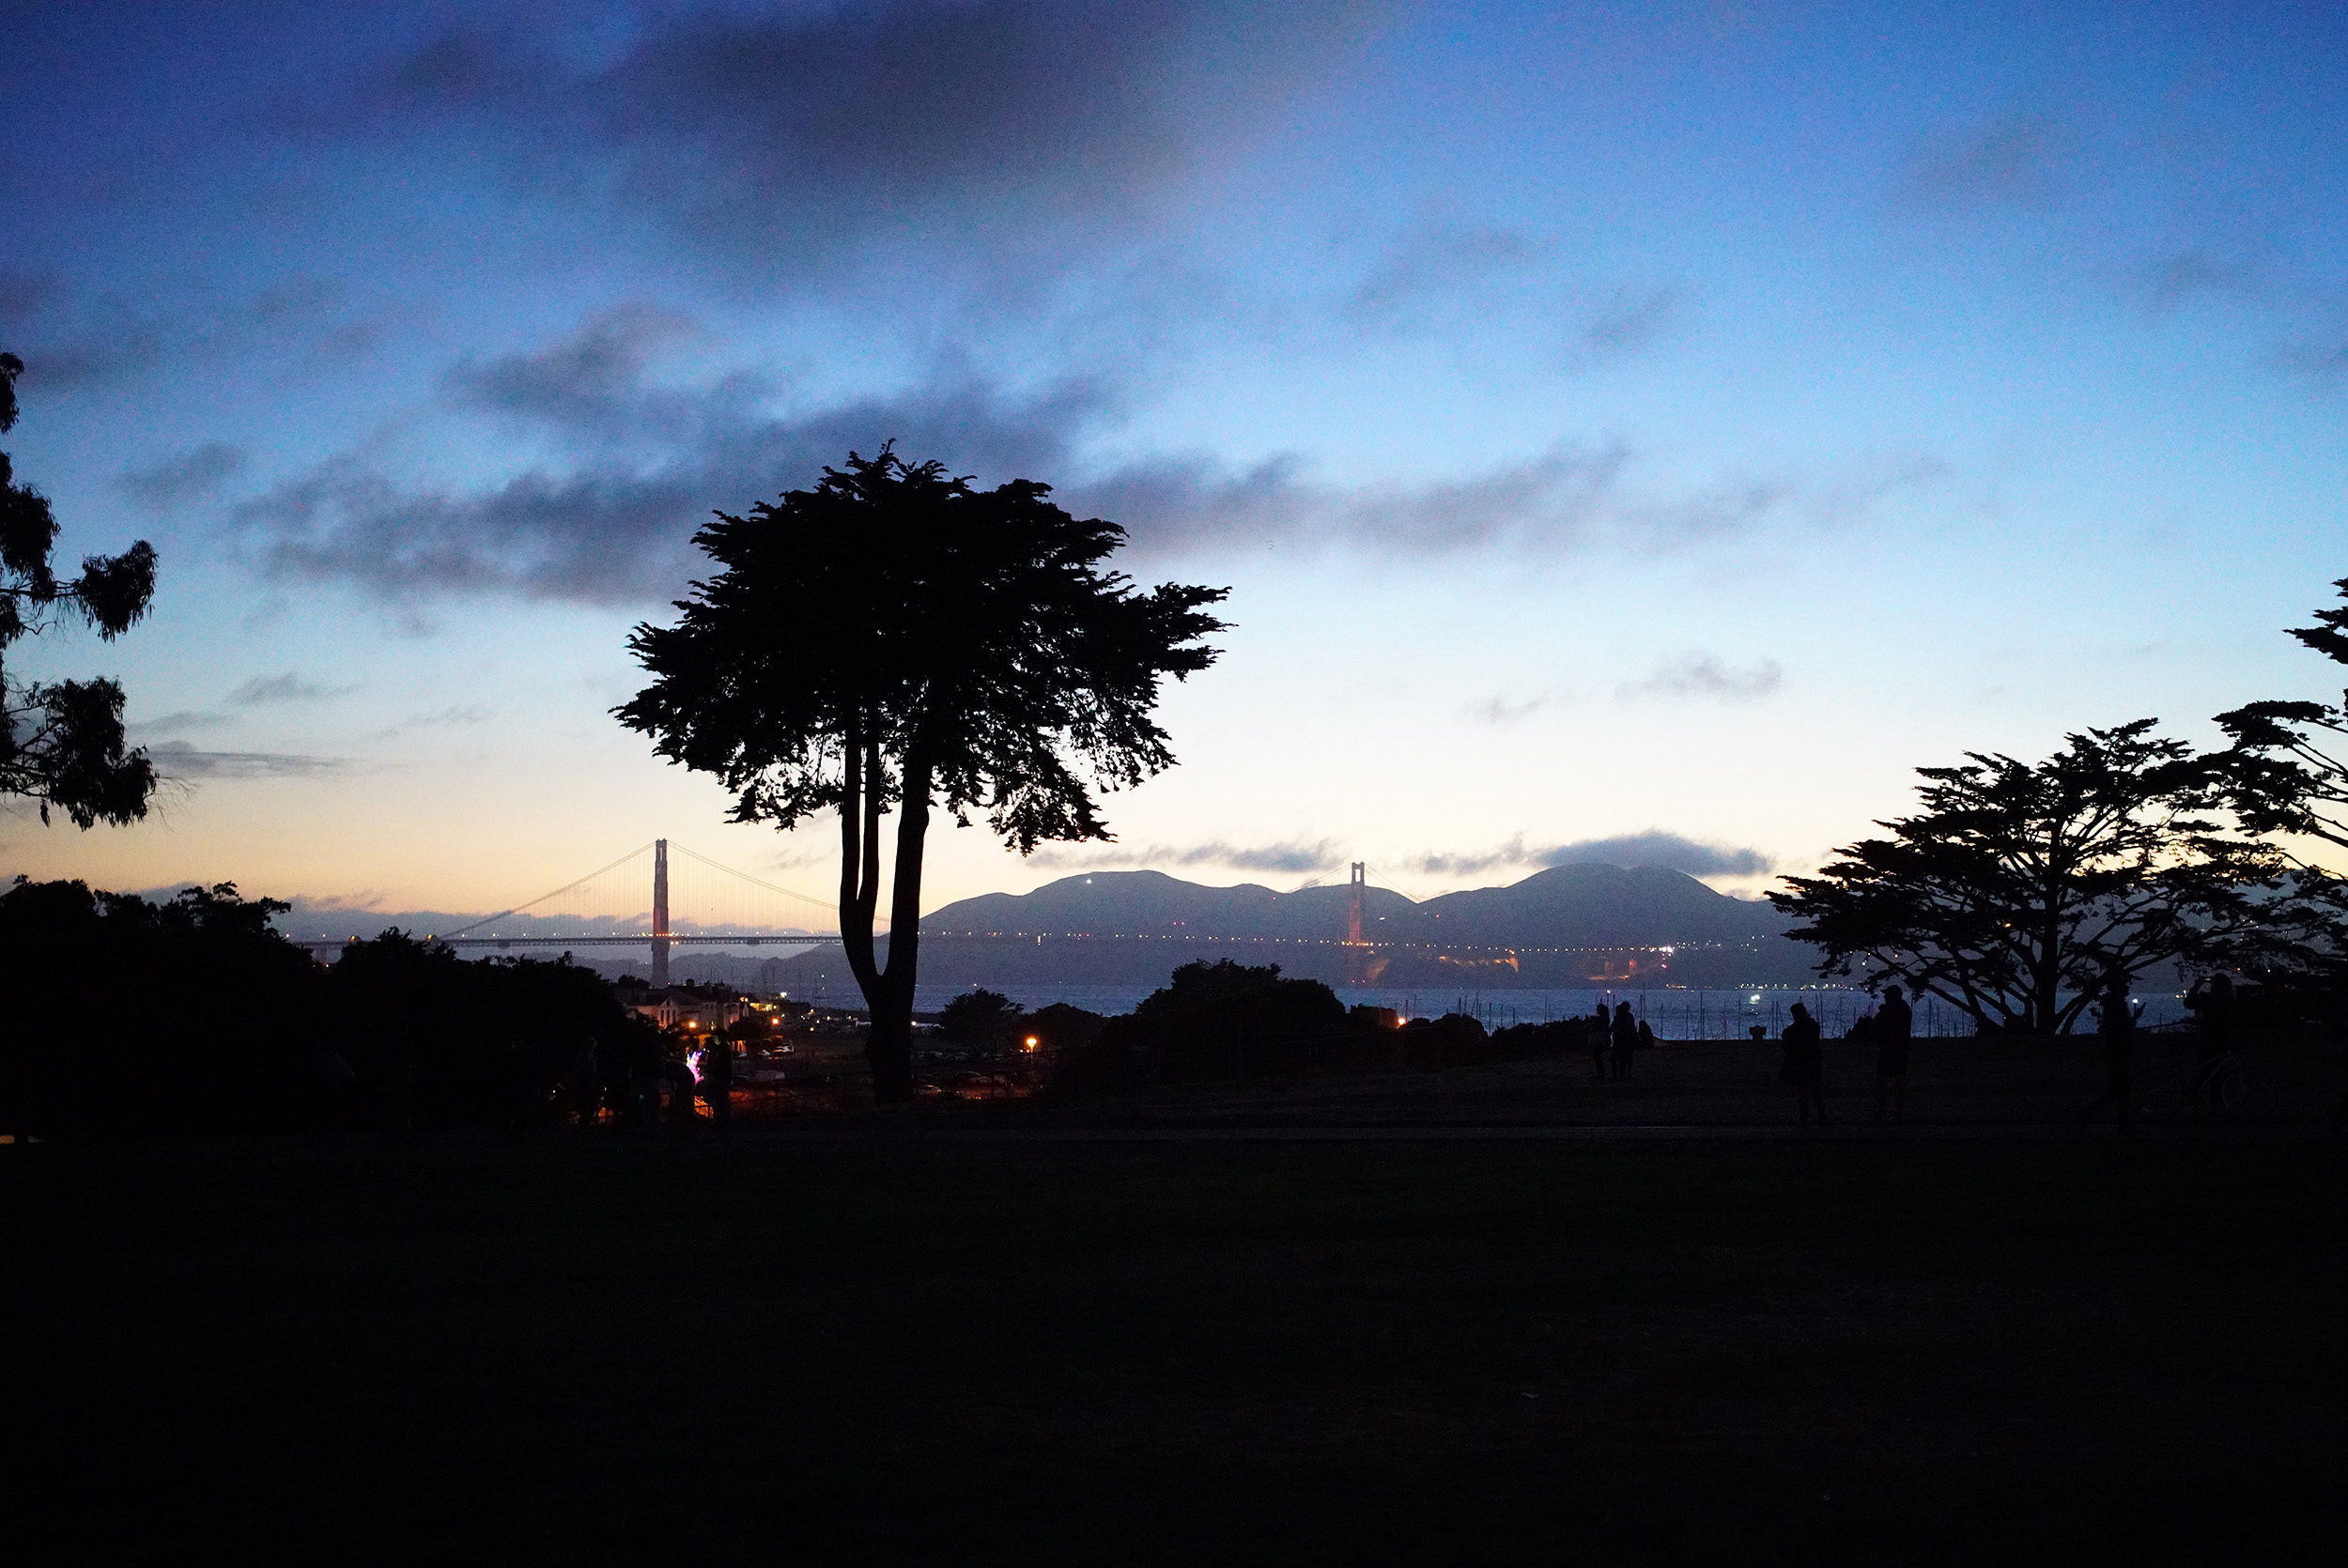 The evening sky over Golden Gate Bridge, our lovely view from Fort Mason.